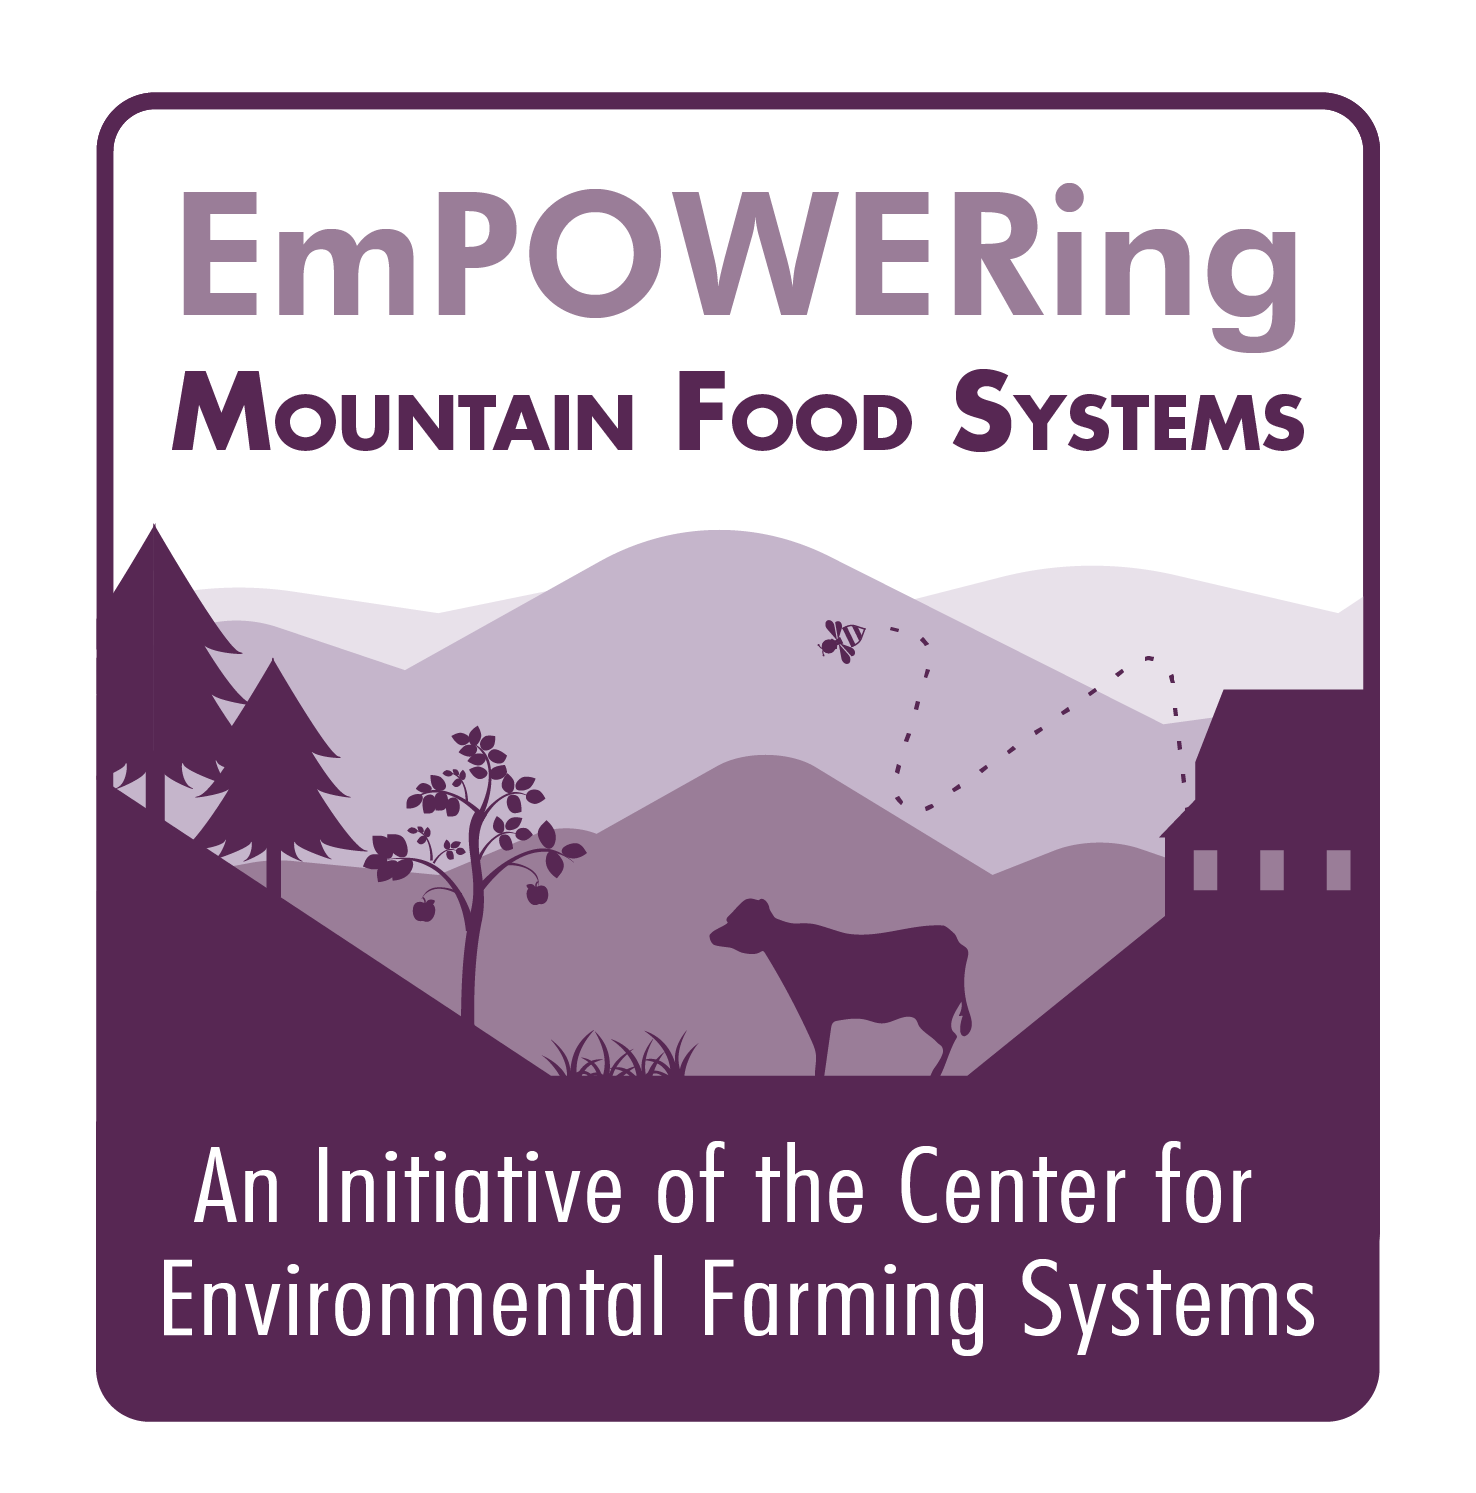 EmPOWERing-Mountain-Food-Systems-logo